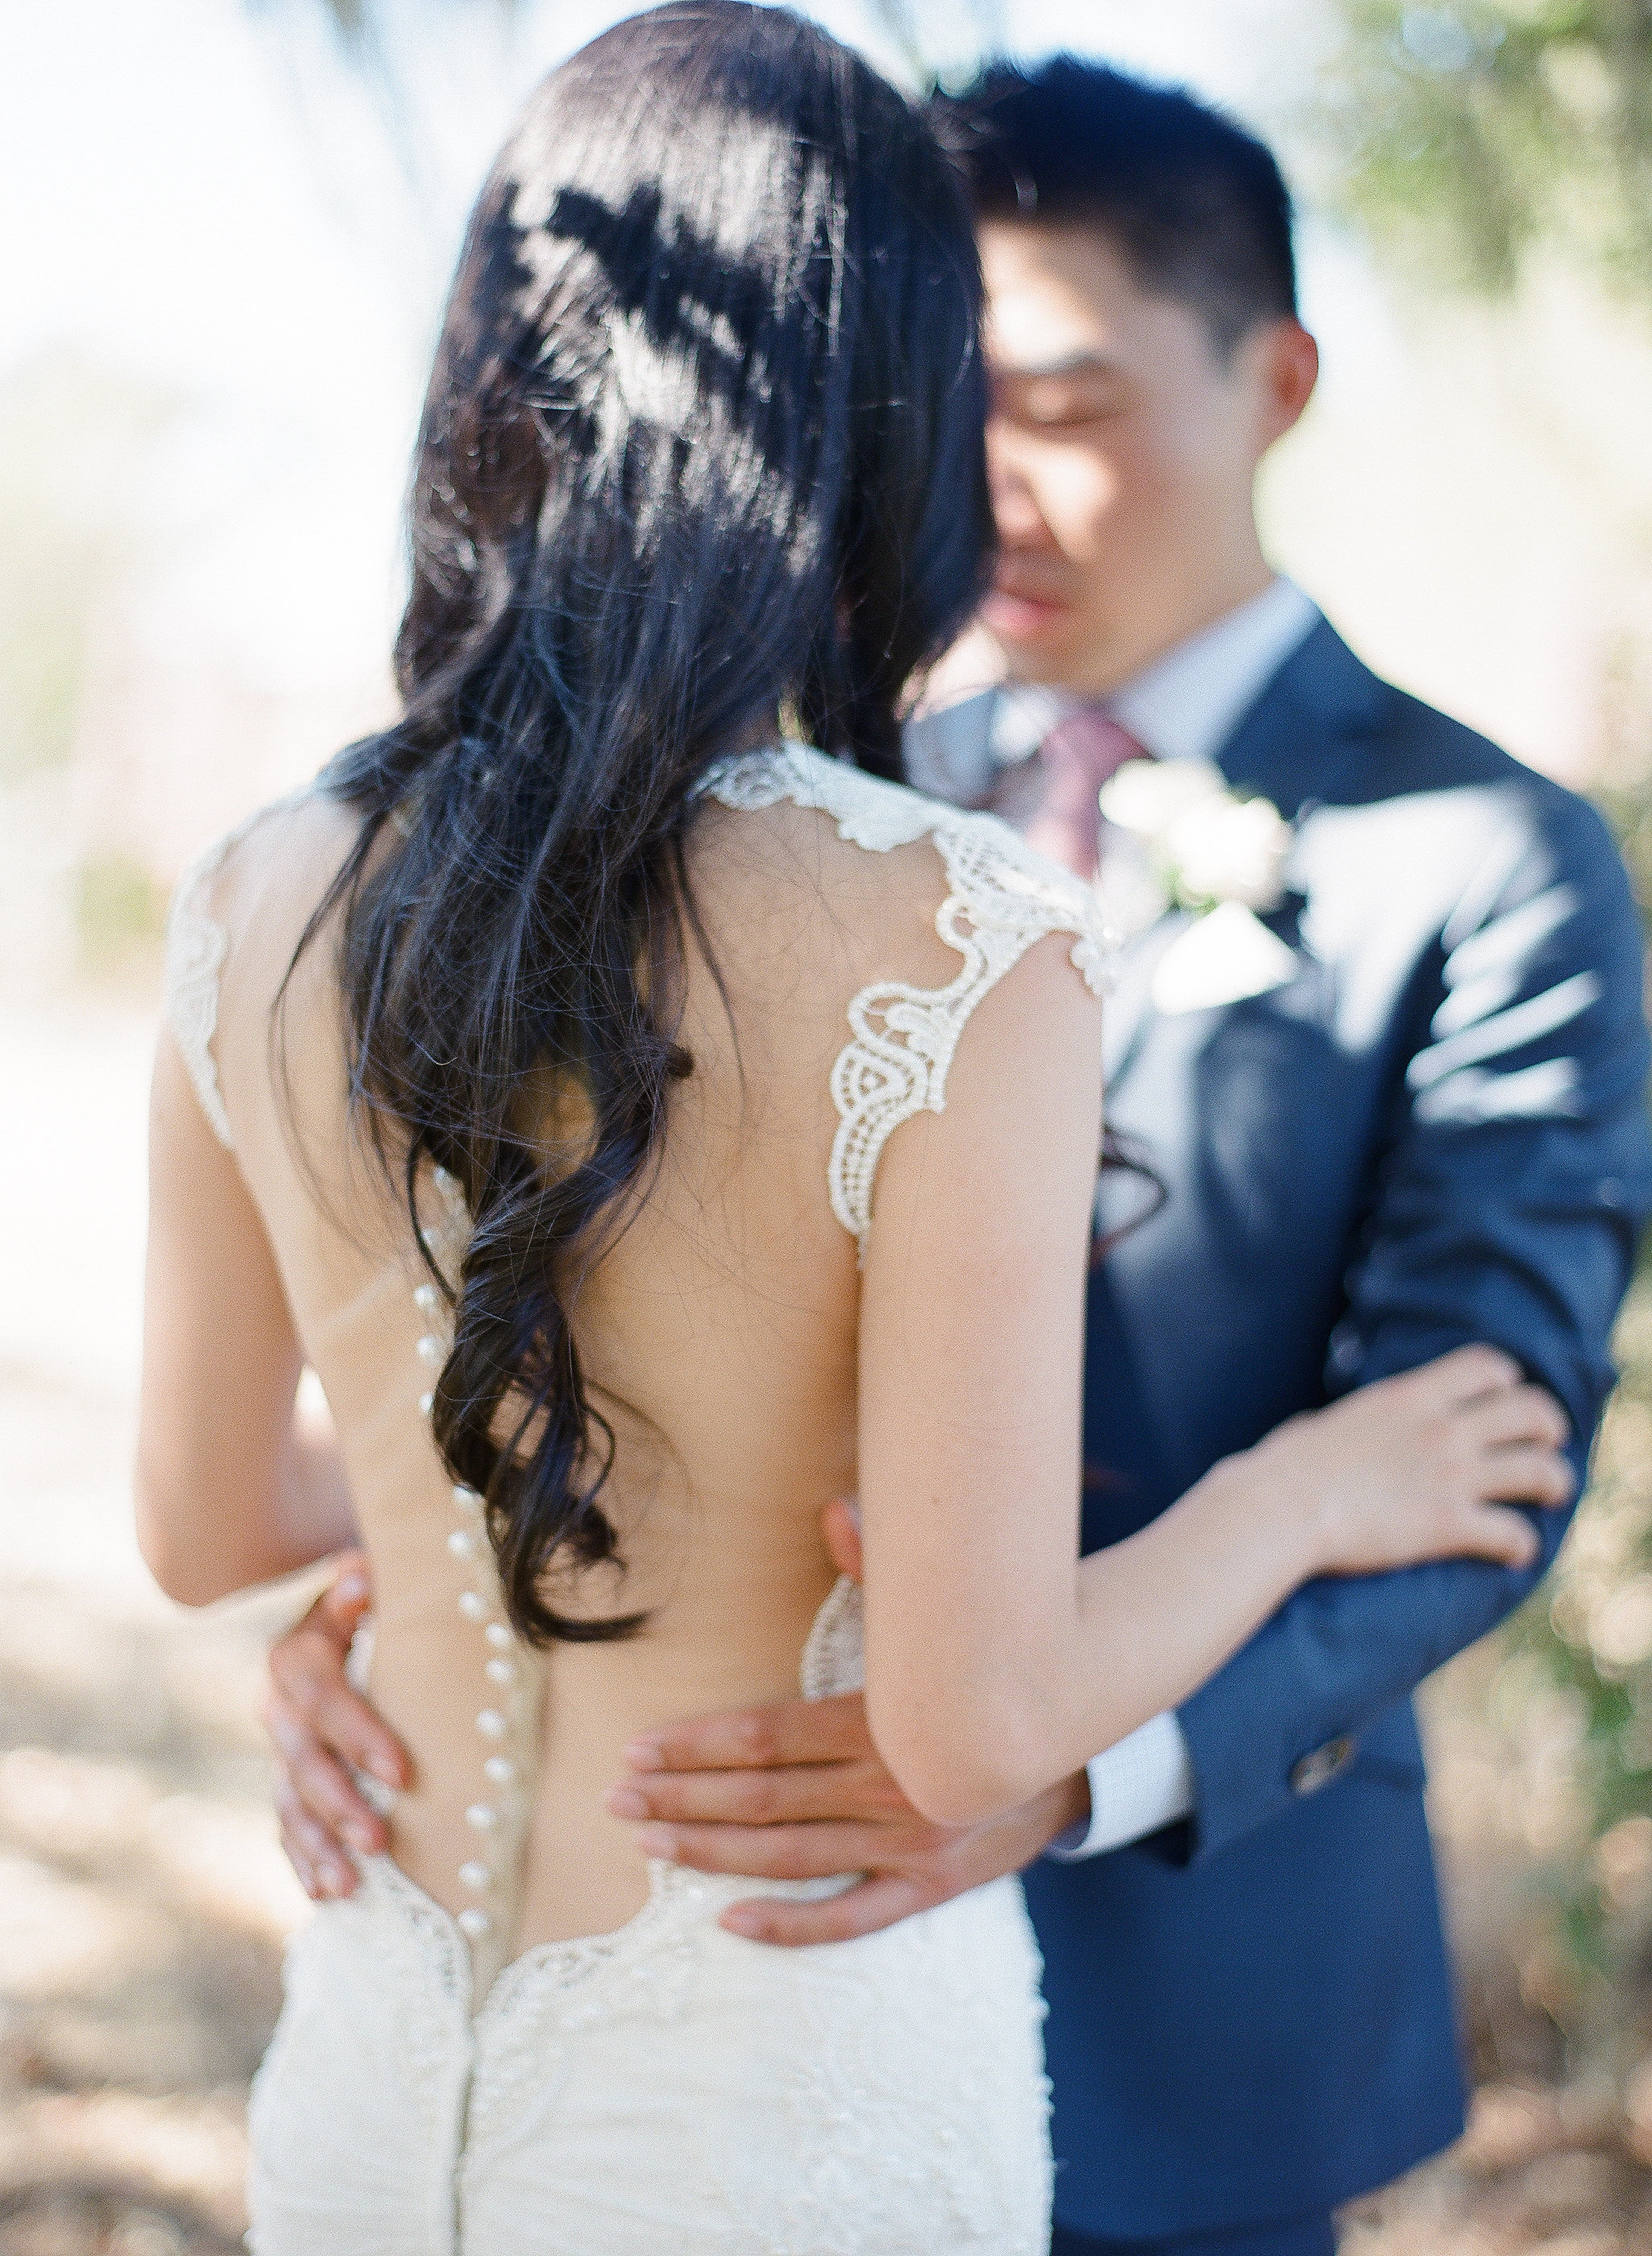 A Bride with an Illusion Back Wedding Dress and Details Down the Spine